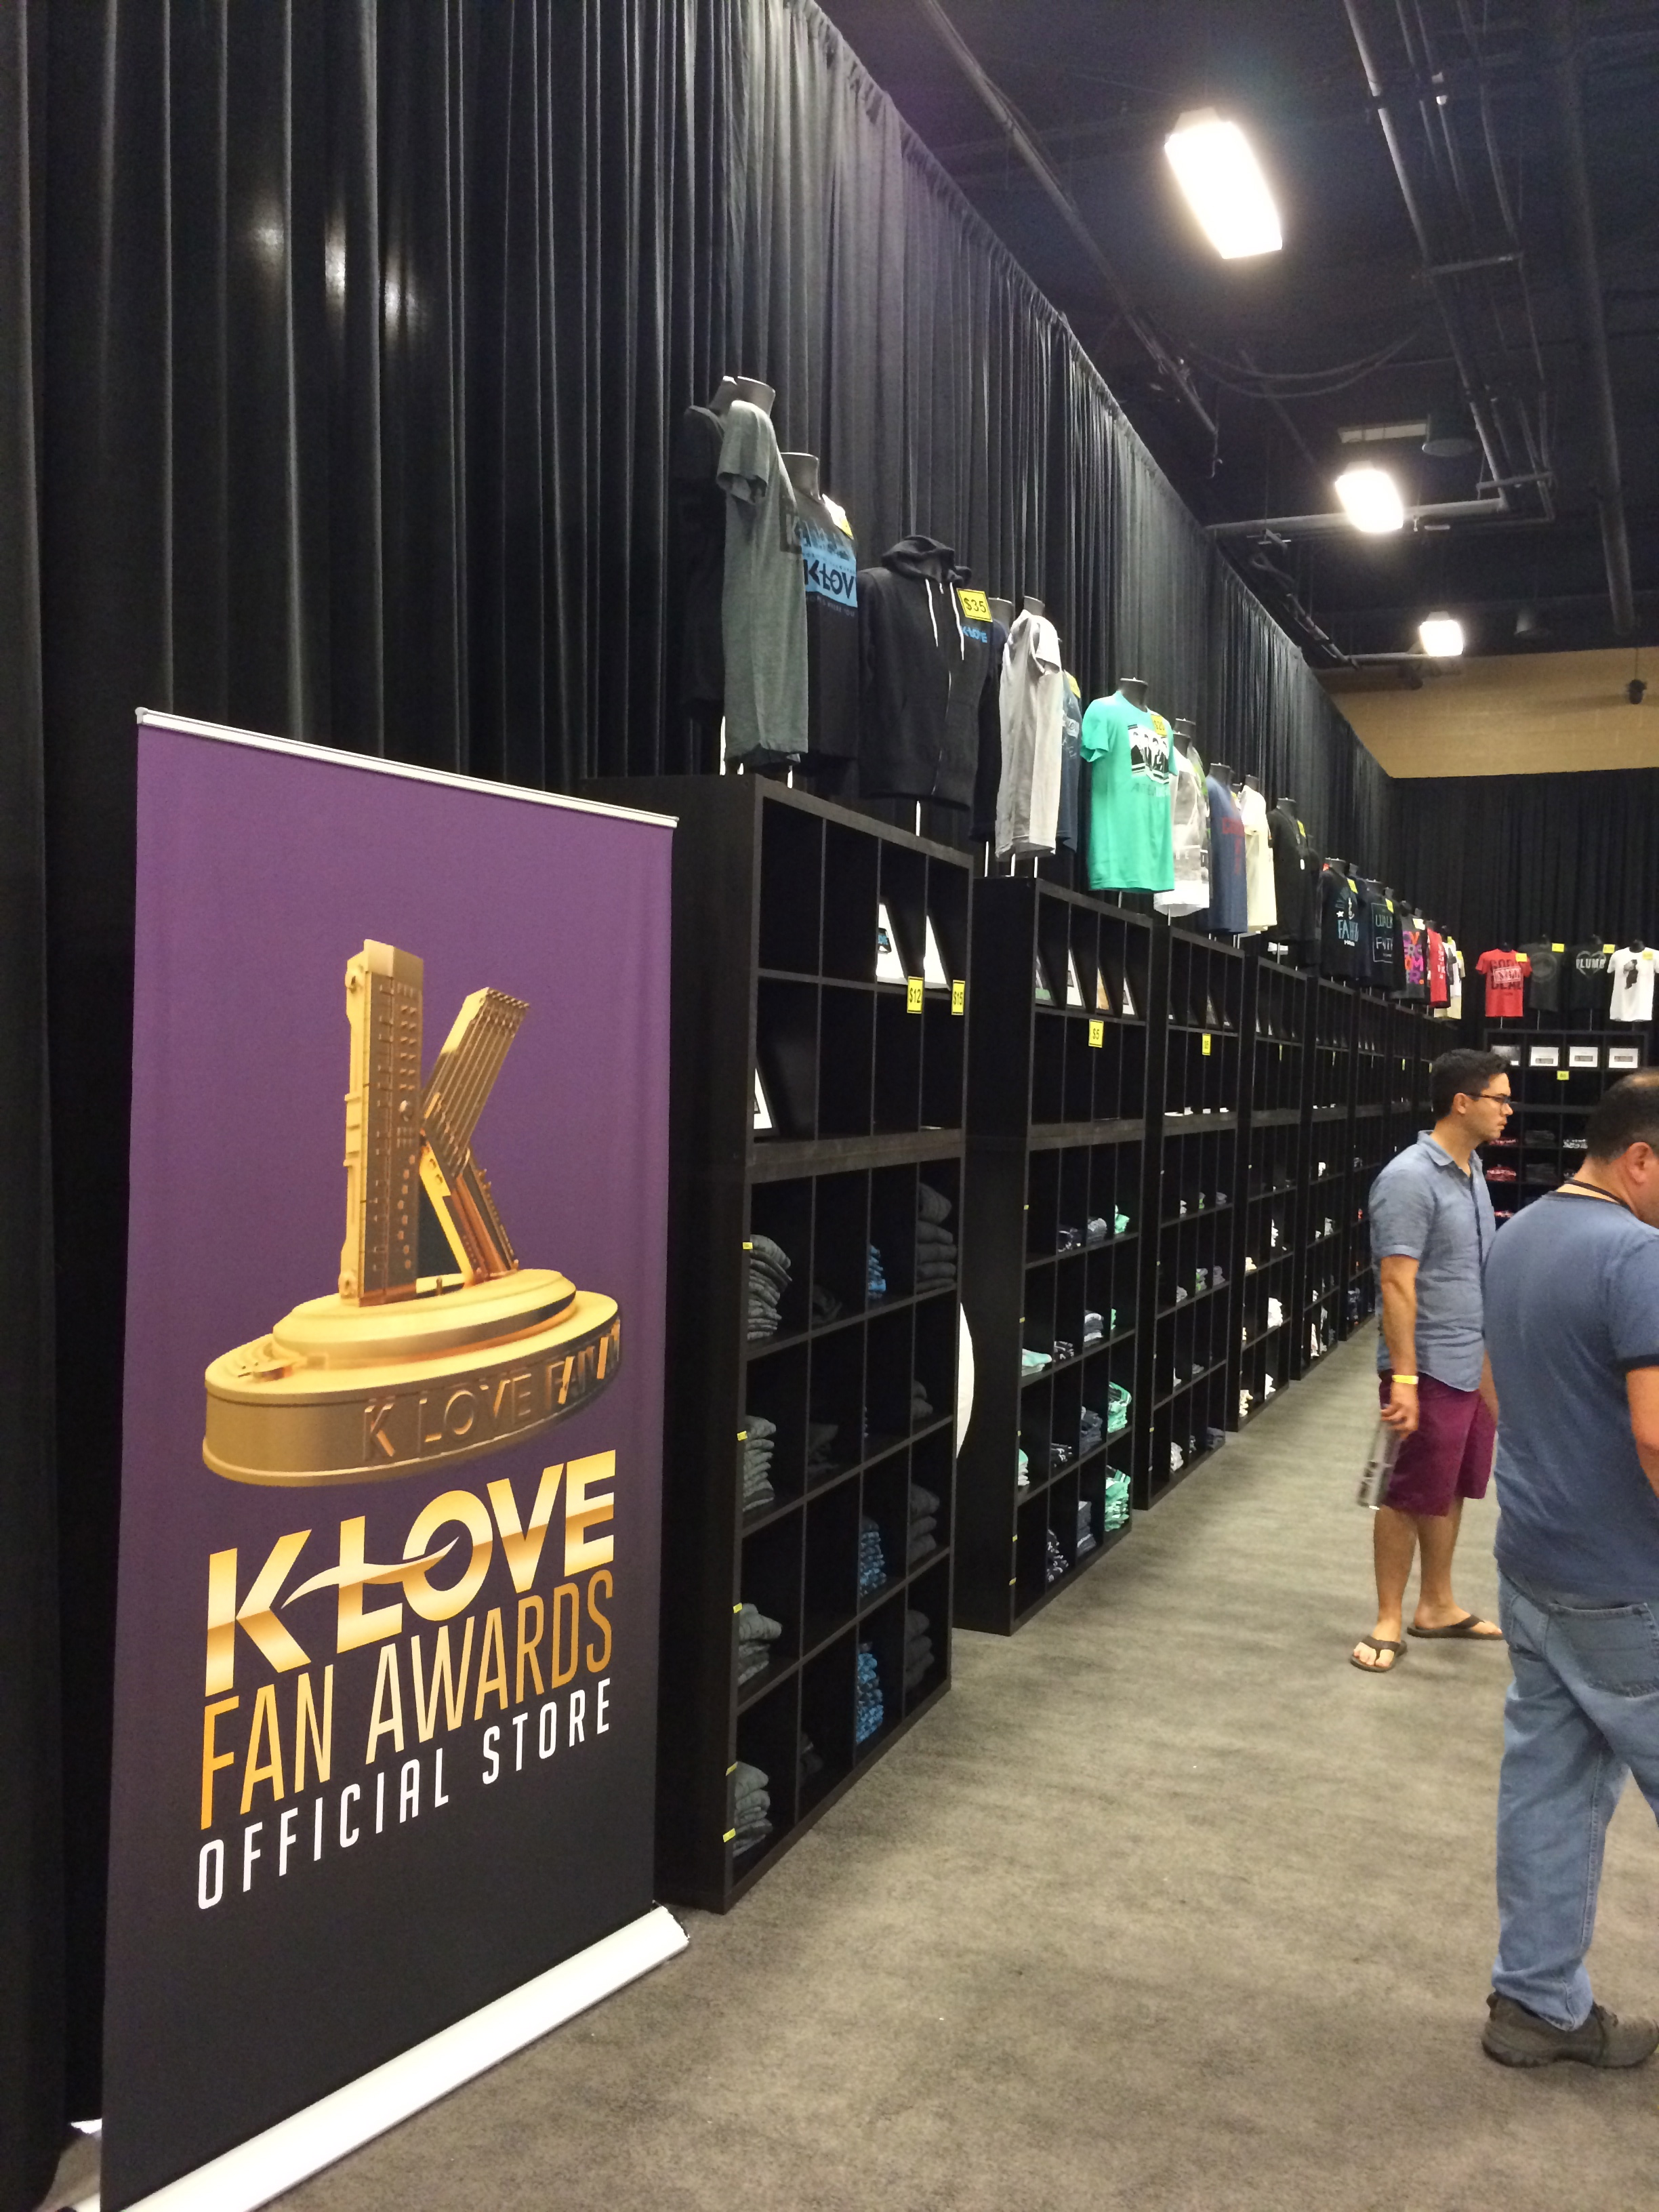 K-LOVE FAN AWARDS 2014